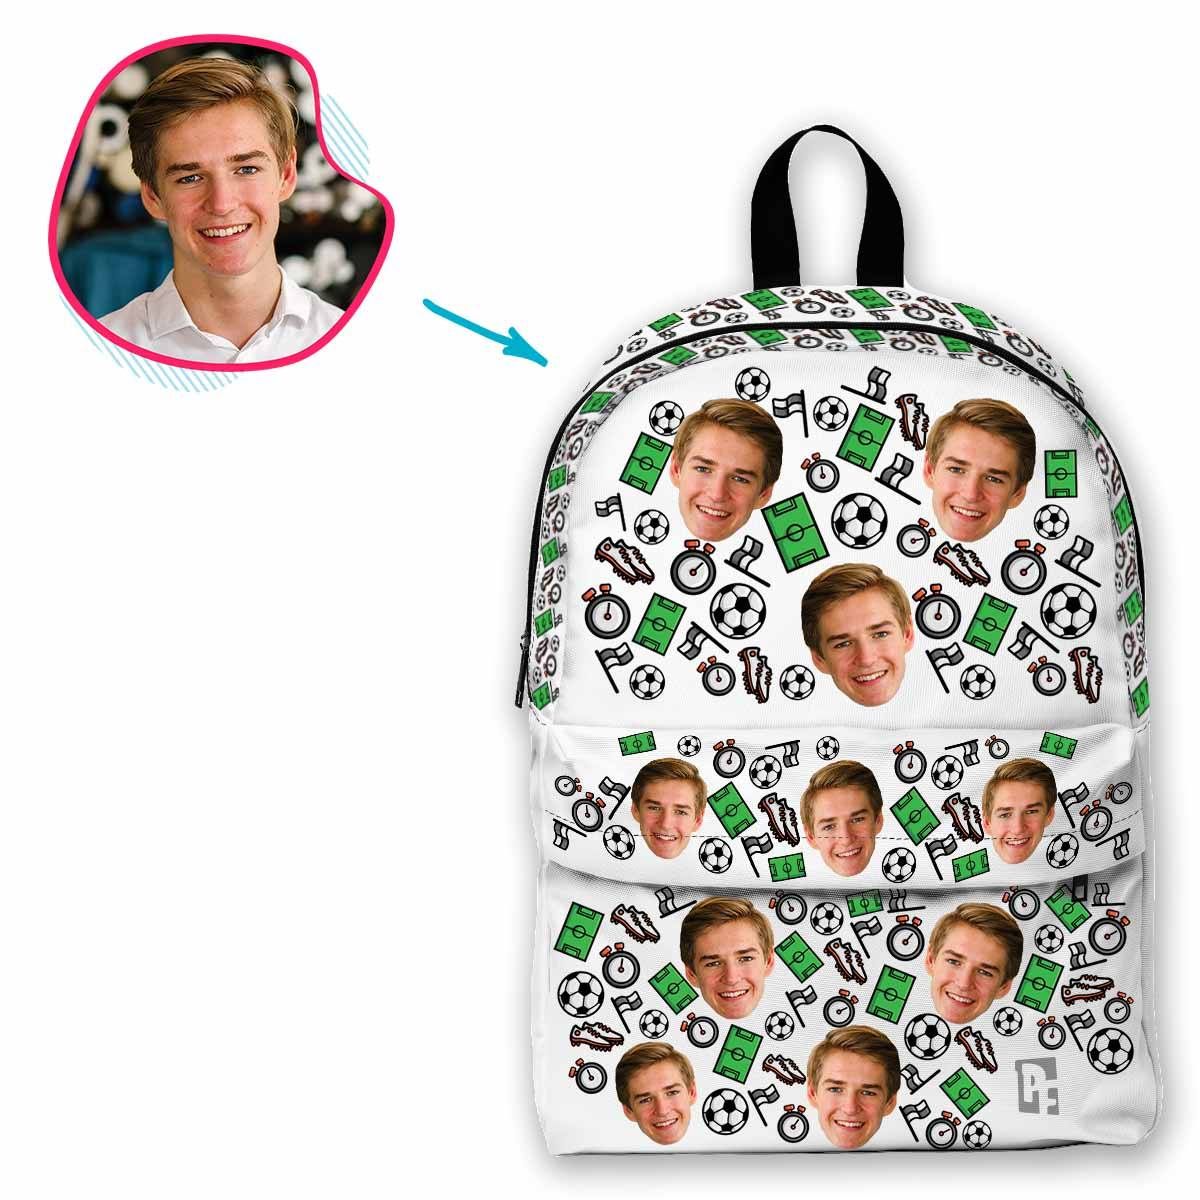 white Football classic backpack personalized with photo of face printed on it